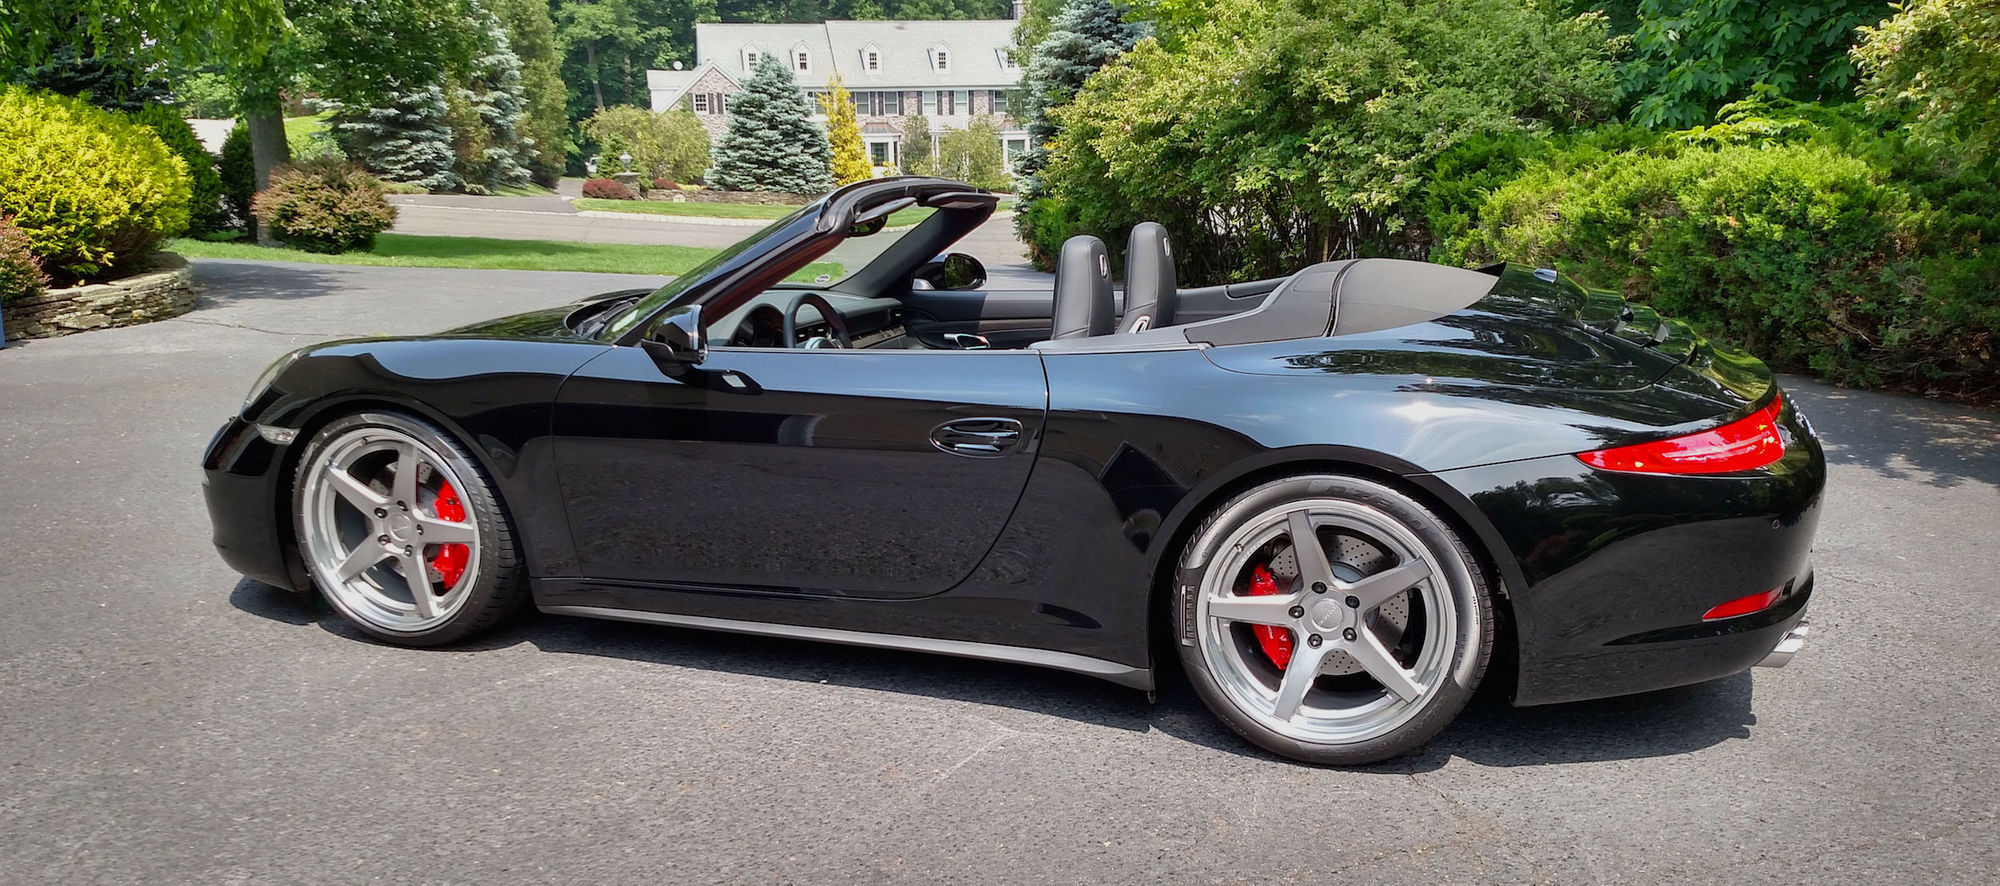 2015 Porsche 911 |  991 Porsche Carrera 911 4S Cabriolet on Forgeline CF3C-SL Wheels